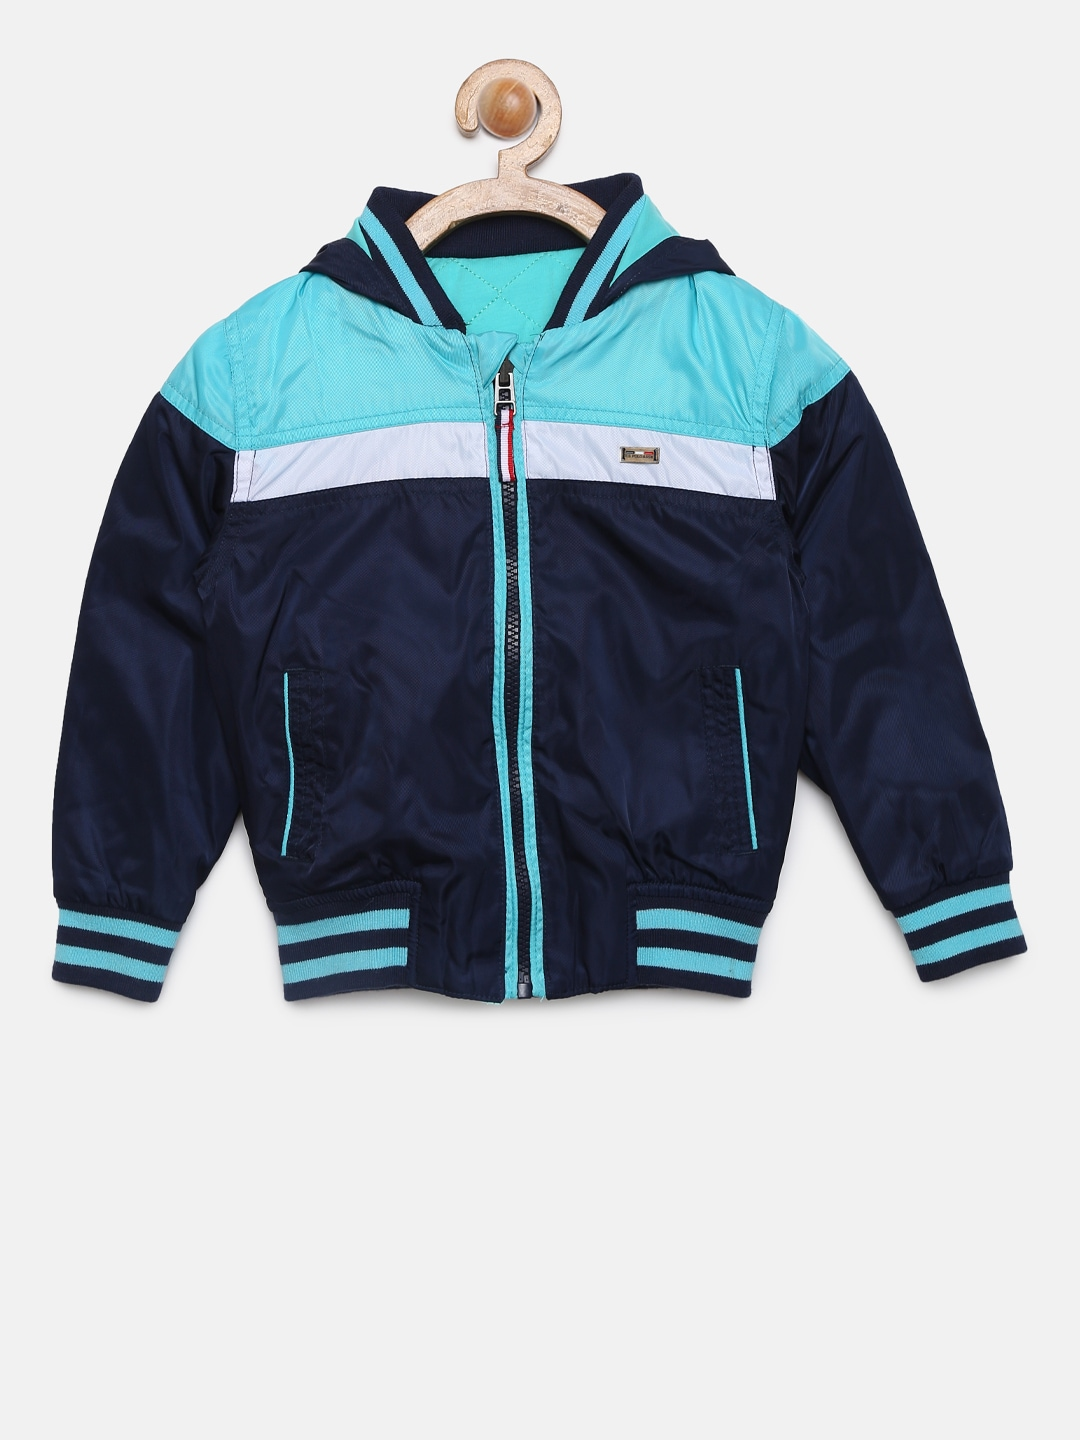 92697f434da0 Windbreaker Jacket - Buy Windbreaker Jacket online in India